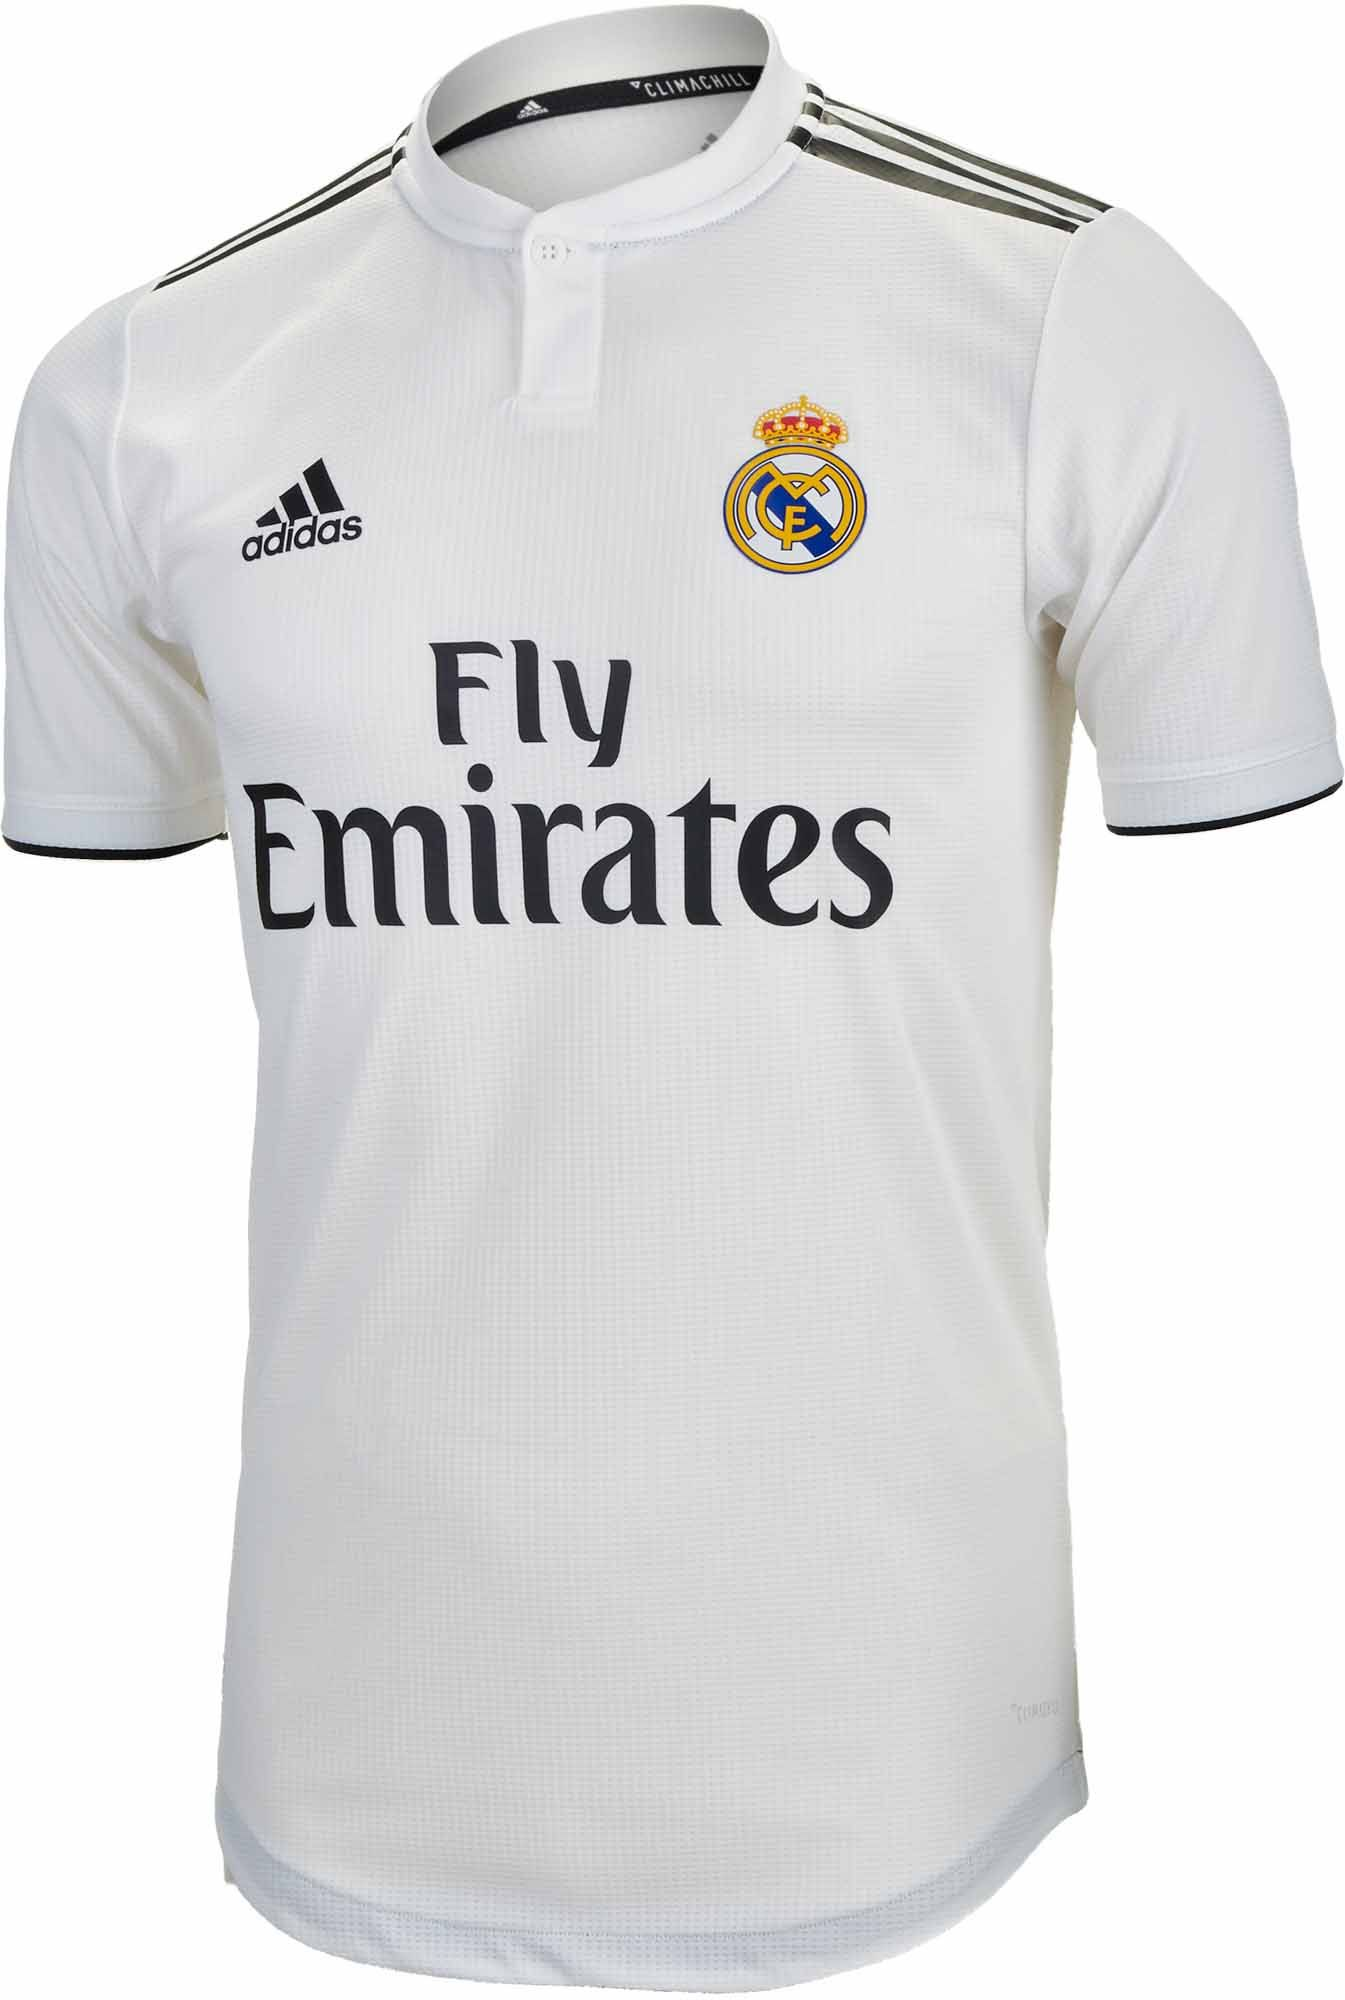 6c2350eaa Buy the adidas Real Madrid Home Authentic Jersey 2018-19 and rock these  sweet threads all season long in support of Los Blancos!